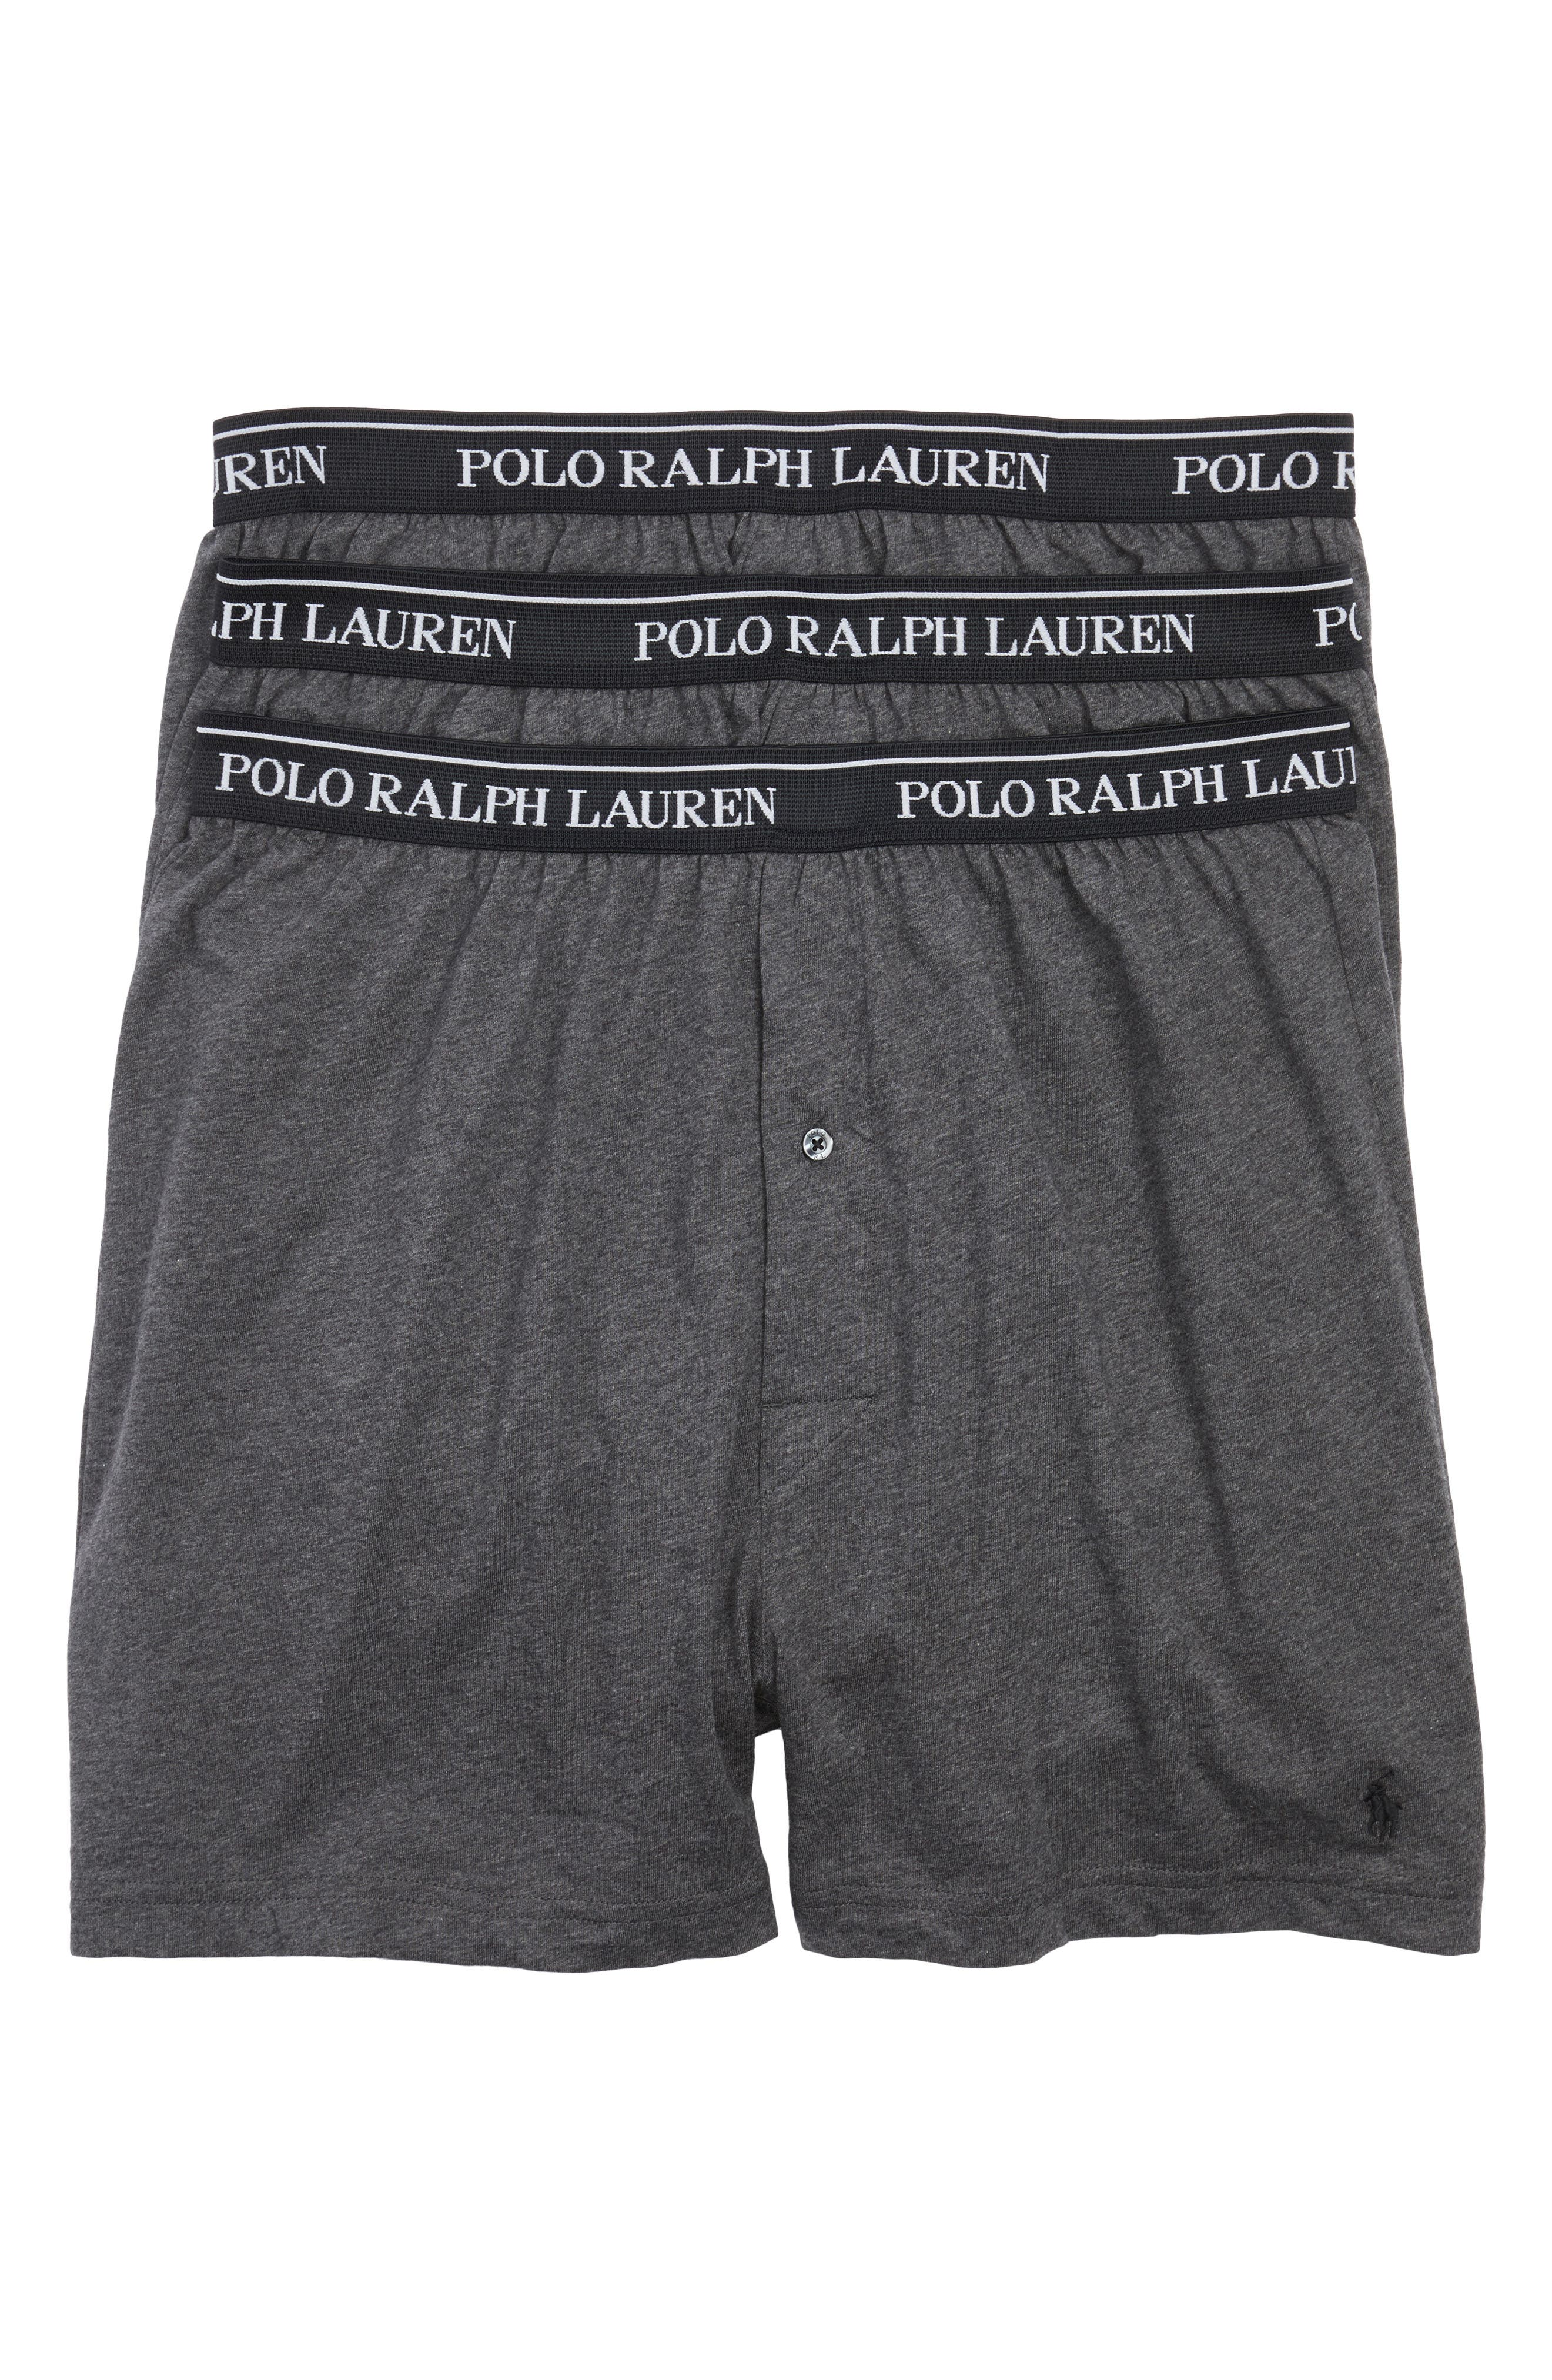 3-Pack Cotton Boxers,                         Main,                         color, Charcoal Heather/ Assorted